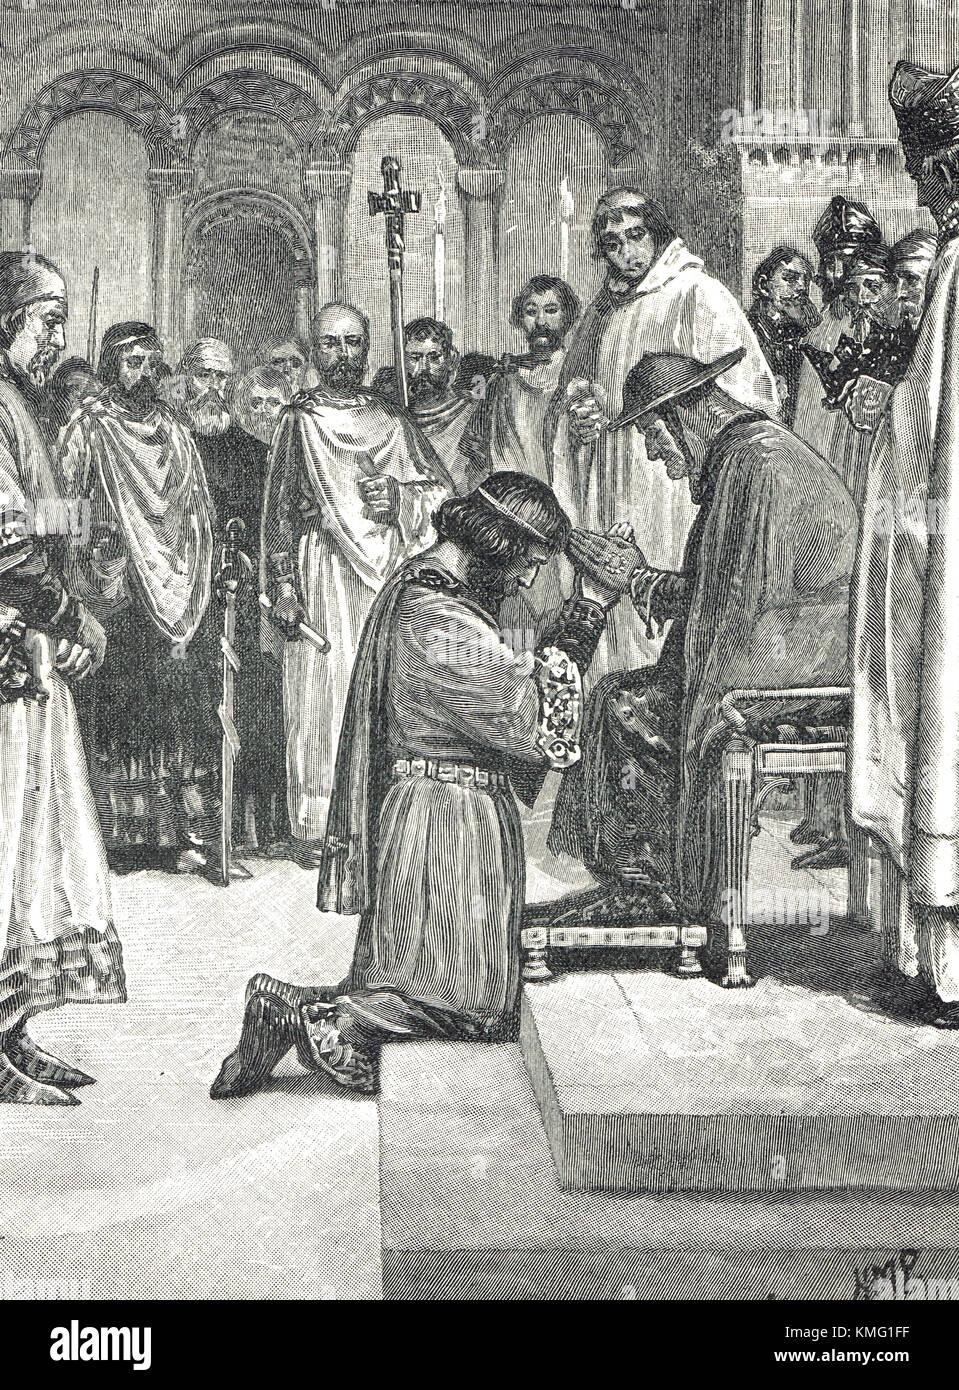 King John paying homage to the legate of Pope Innocent III in 1213 - Stock Image